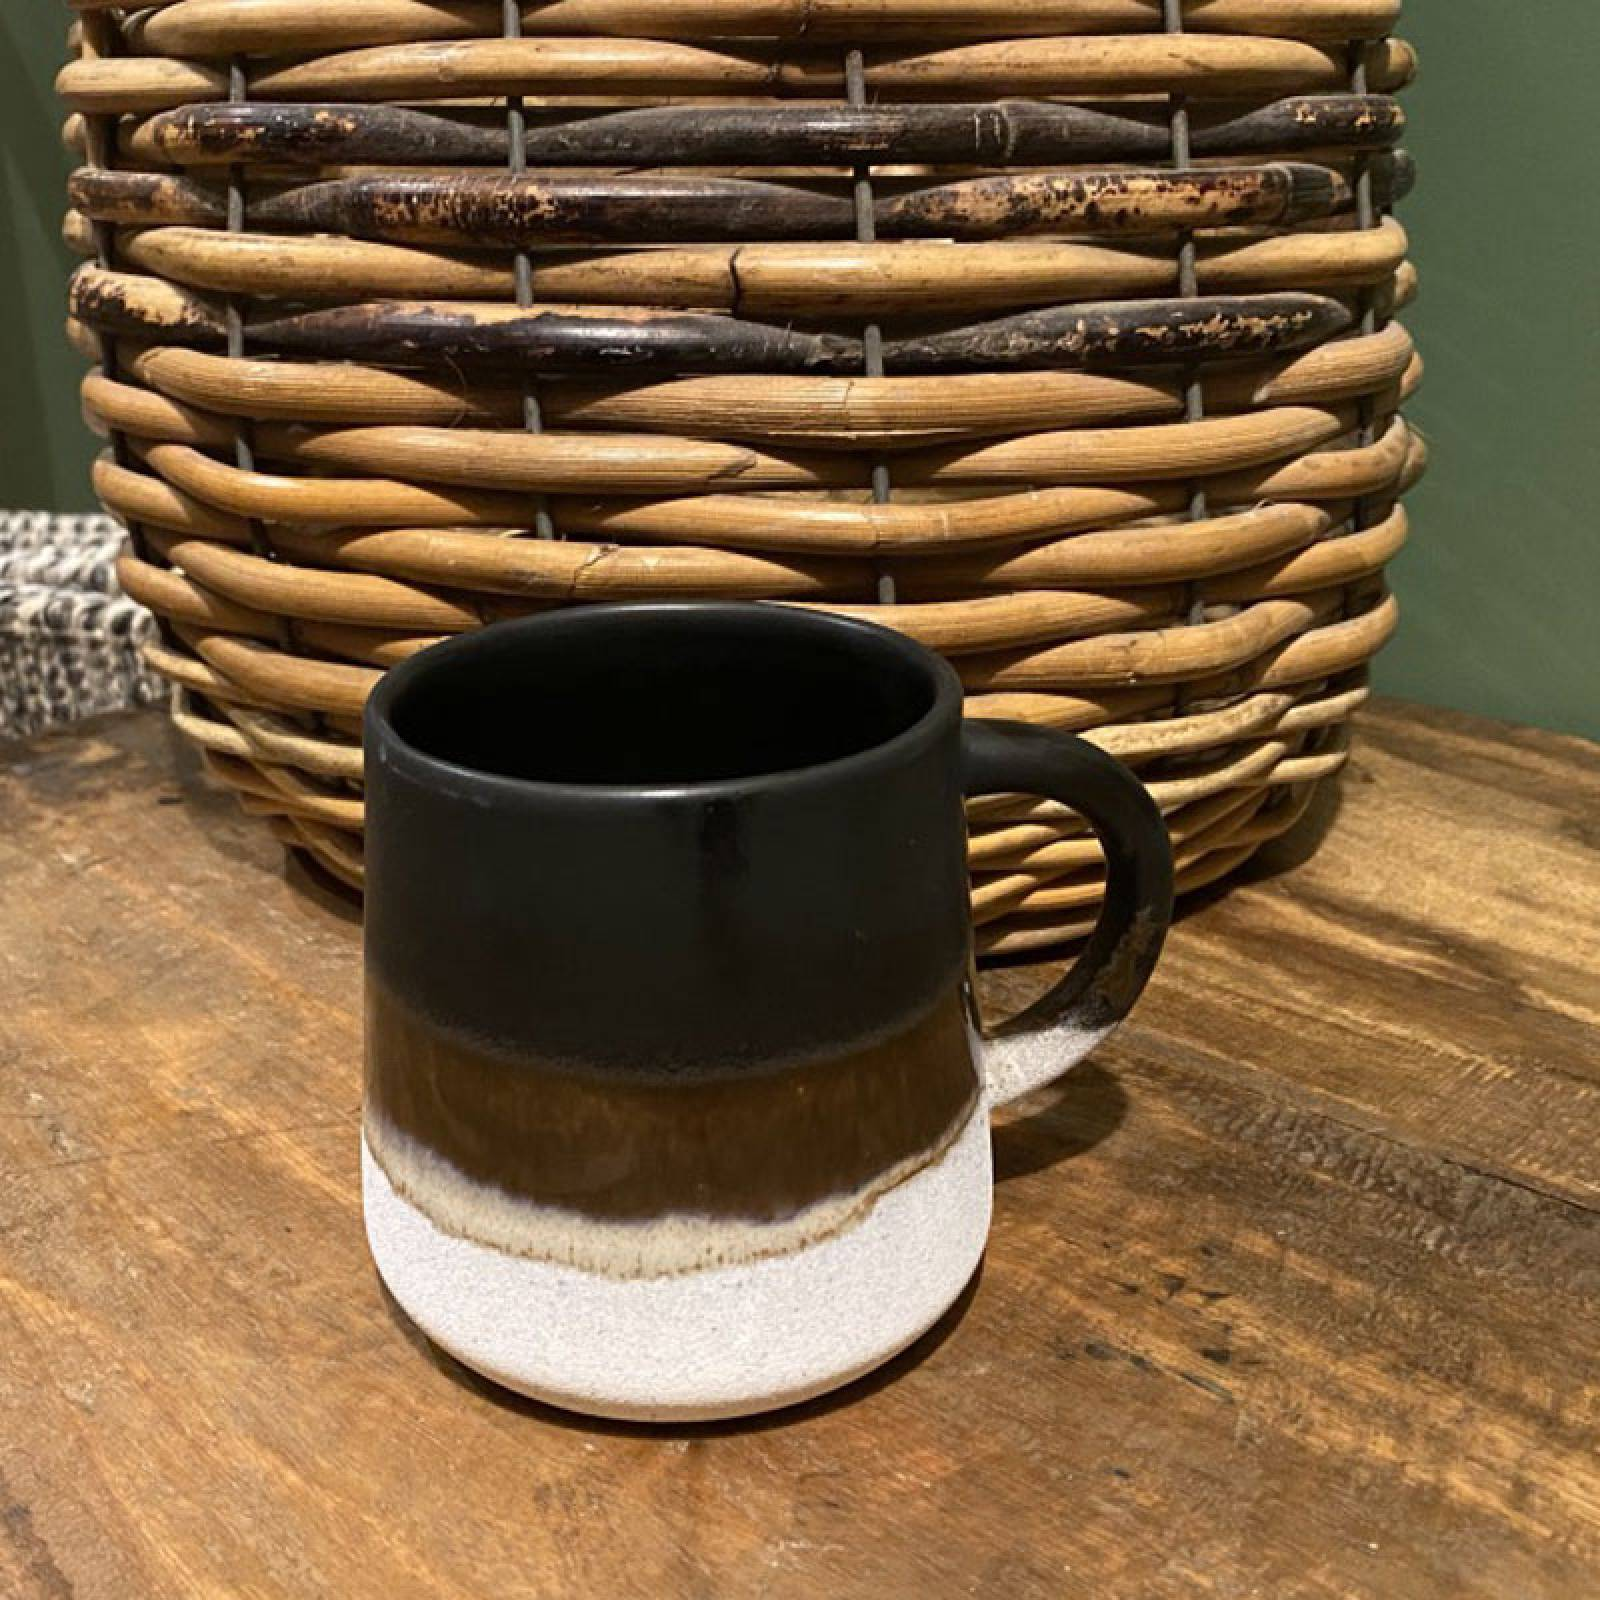 Two Tone Dip Glazed Stoneware Mug In Black thumbnails